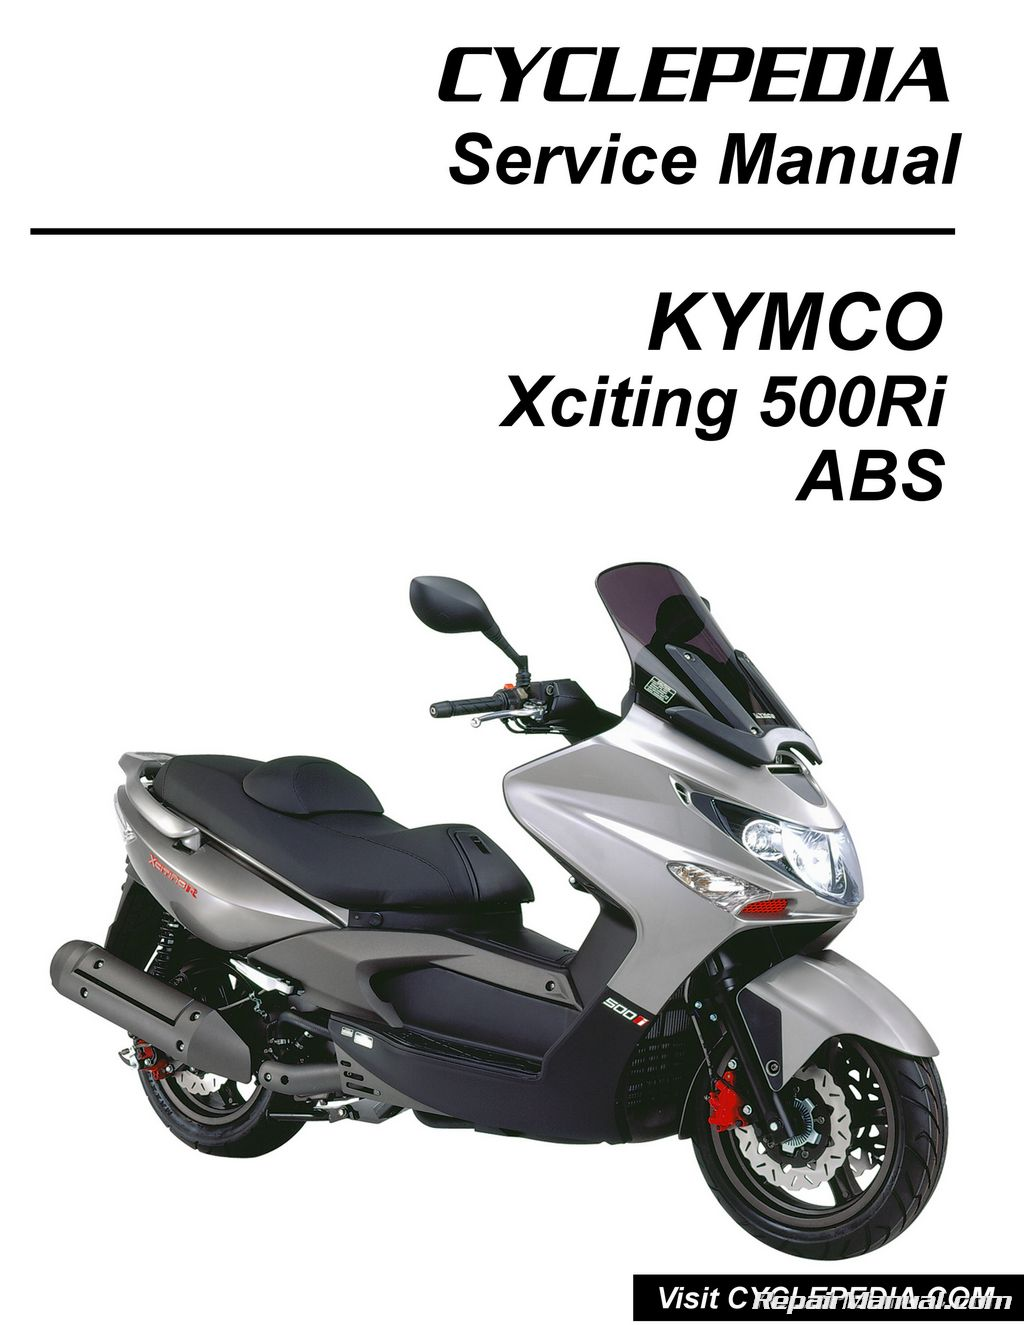 169757246 1982 Honda Xl400r Xl500r Workshop Service Repair further Used Toyota Engine 1MZFE Cylinder Head 754944510 together with Magna1100Saga likewise Scooter Repair Manual Daelim Honda Kymco Piaggio also Honda Accord88 Radiator Diagram And Schematics. on honda motorcycle repair diagrams